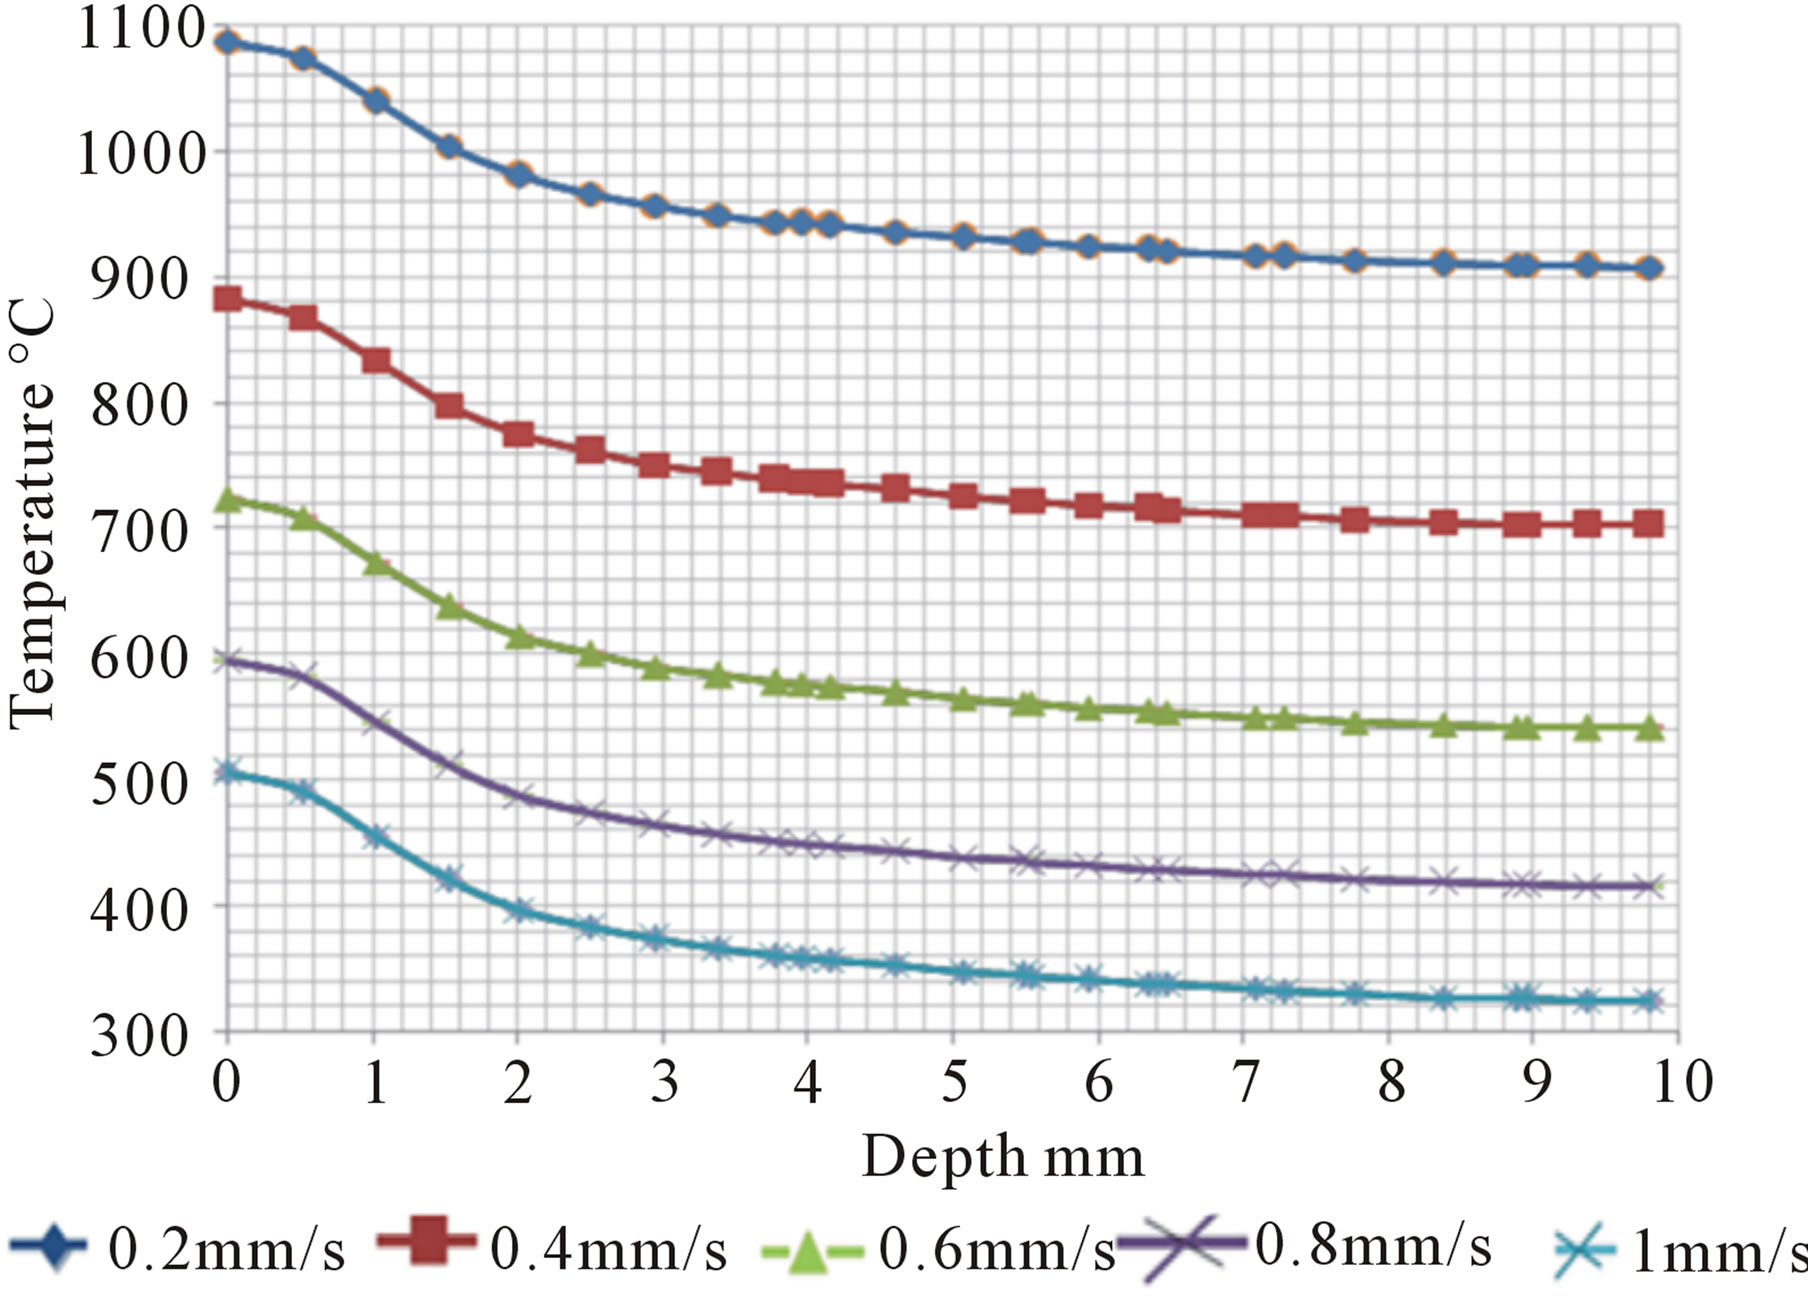 Modeling And Simulation Of Laser Assisted Turning Hard Steels Electricalacdc 509480twolightsoneswitchwiringquestionhtml Temperature Distribution Through Depth As A Function Scanning Speed With Other Parameters Kept Constant At 800 W Power 20 Sec Preheating